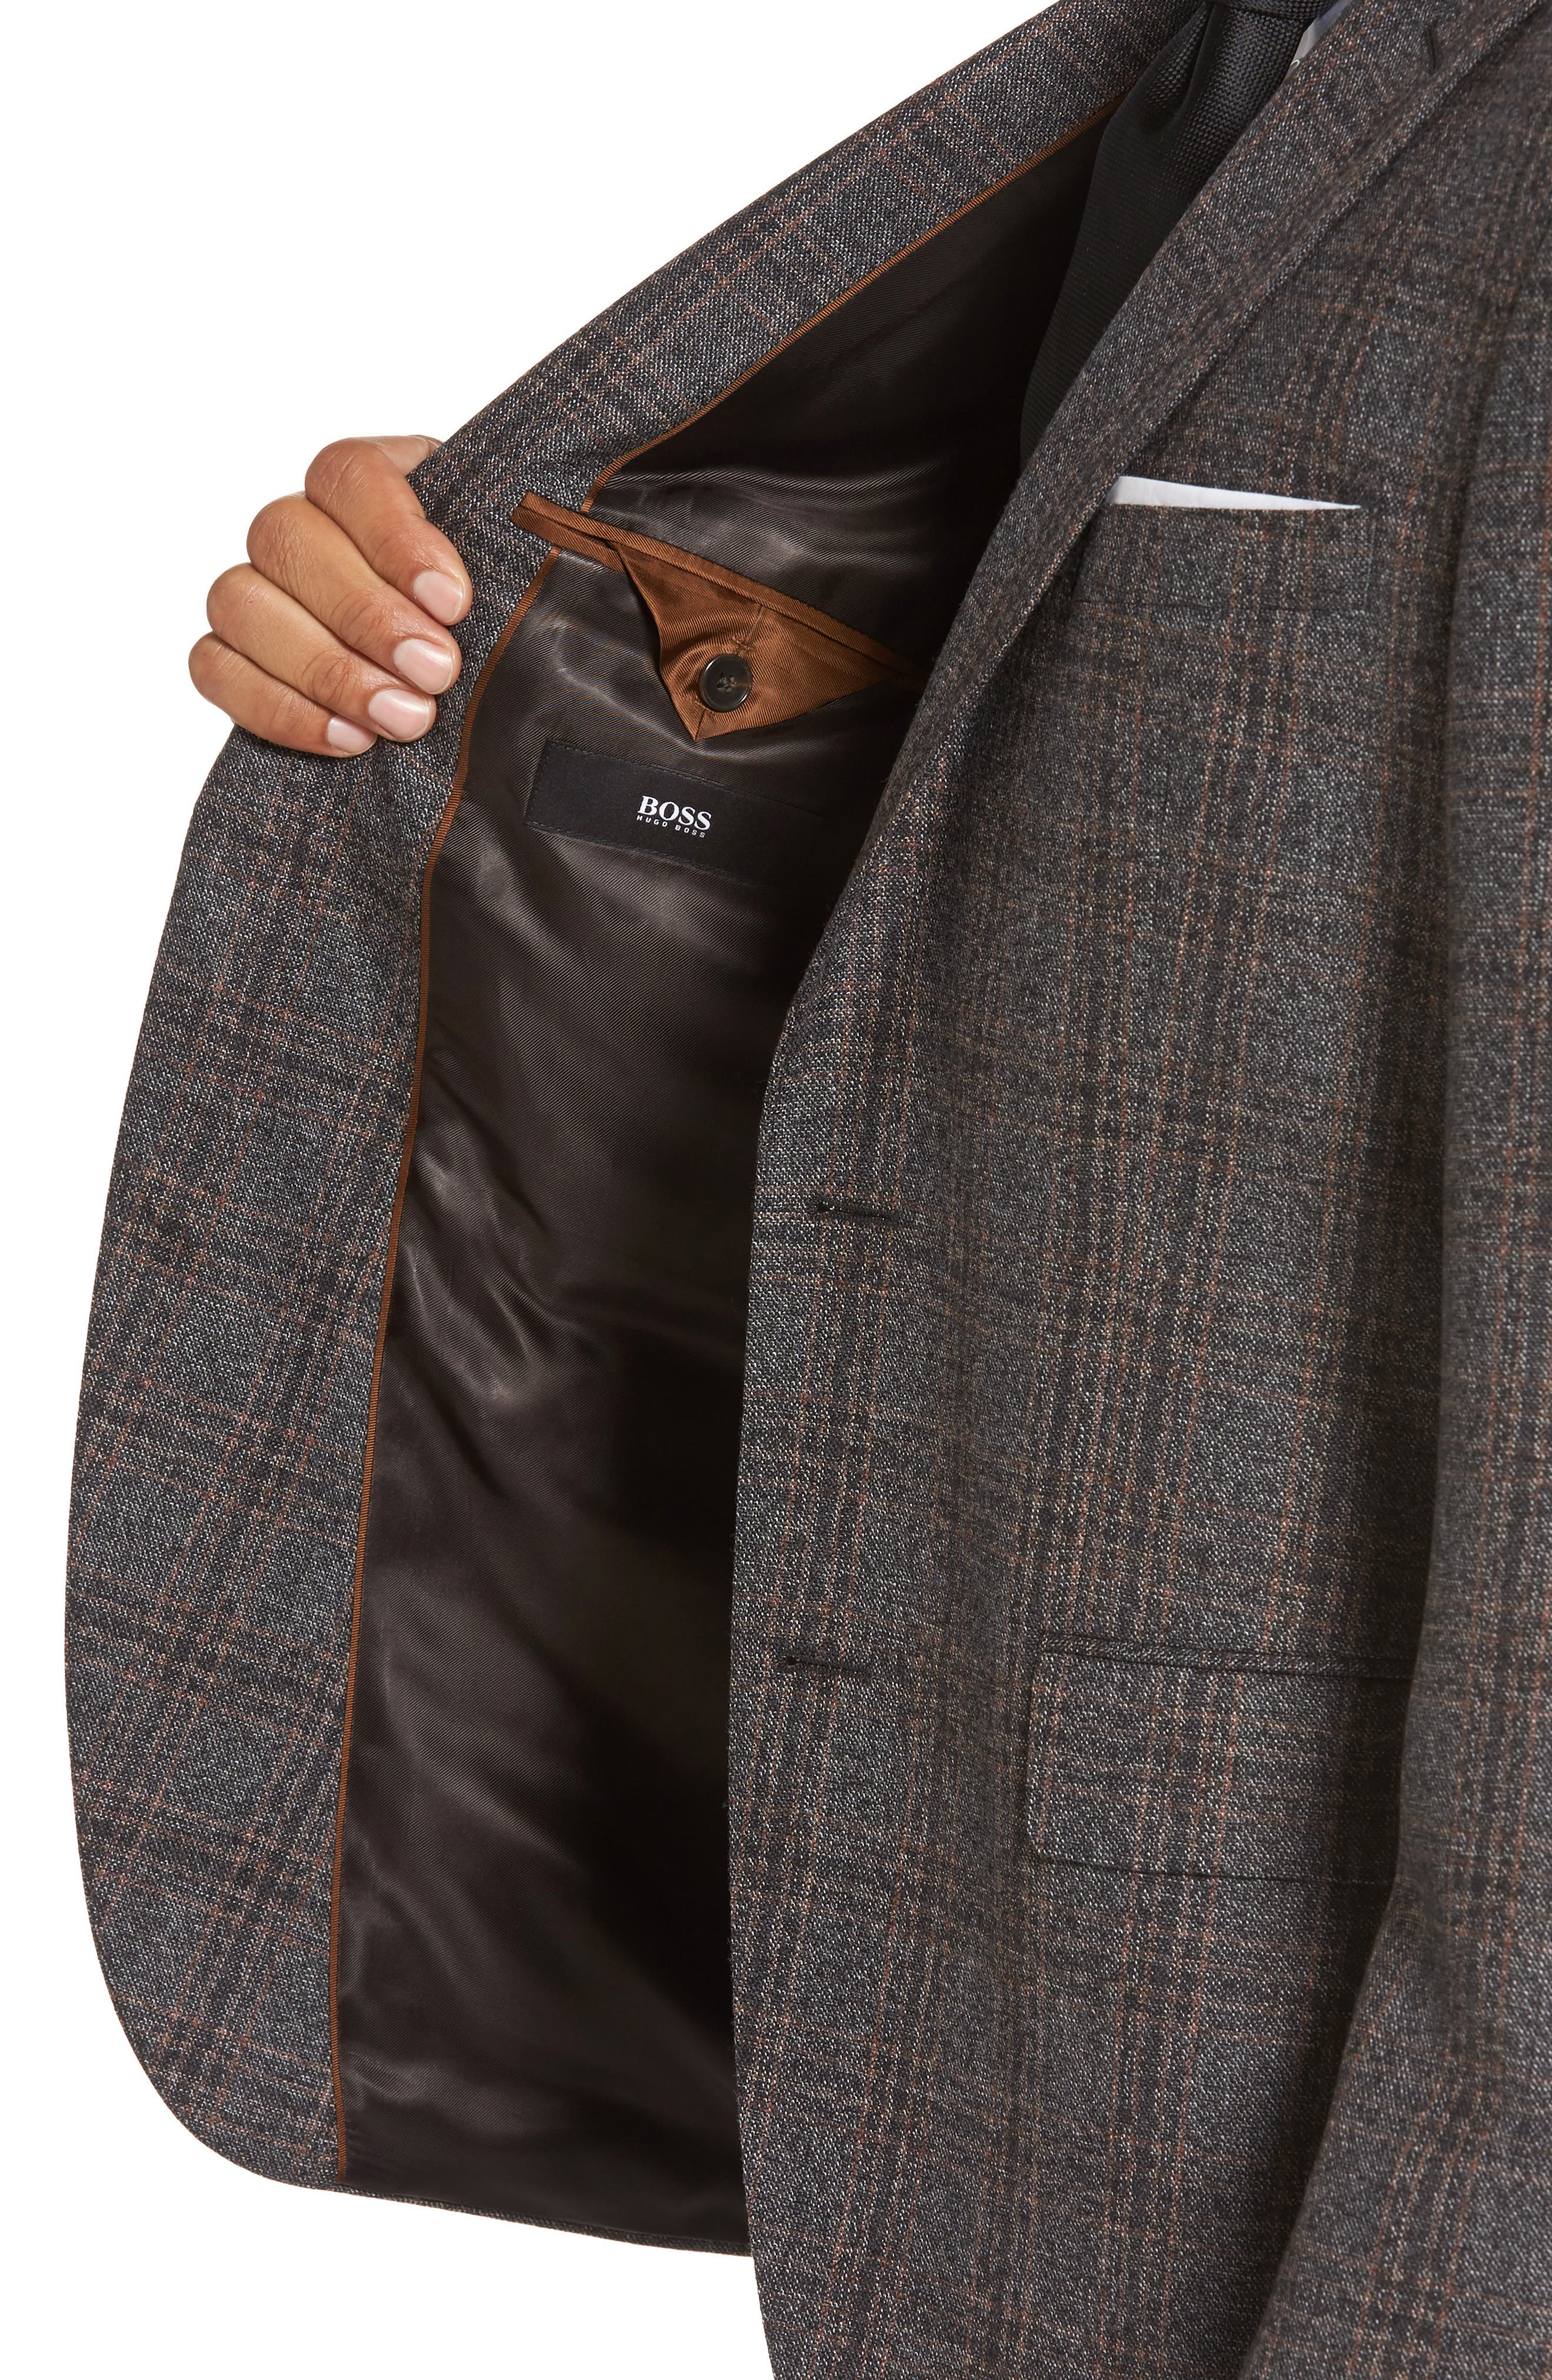 Jeen Trim Fit Plaid Wool Sport Coat,                             Alternate thumbnail 4, color,                             Dark Brown